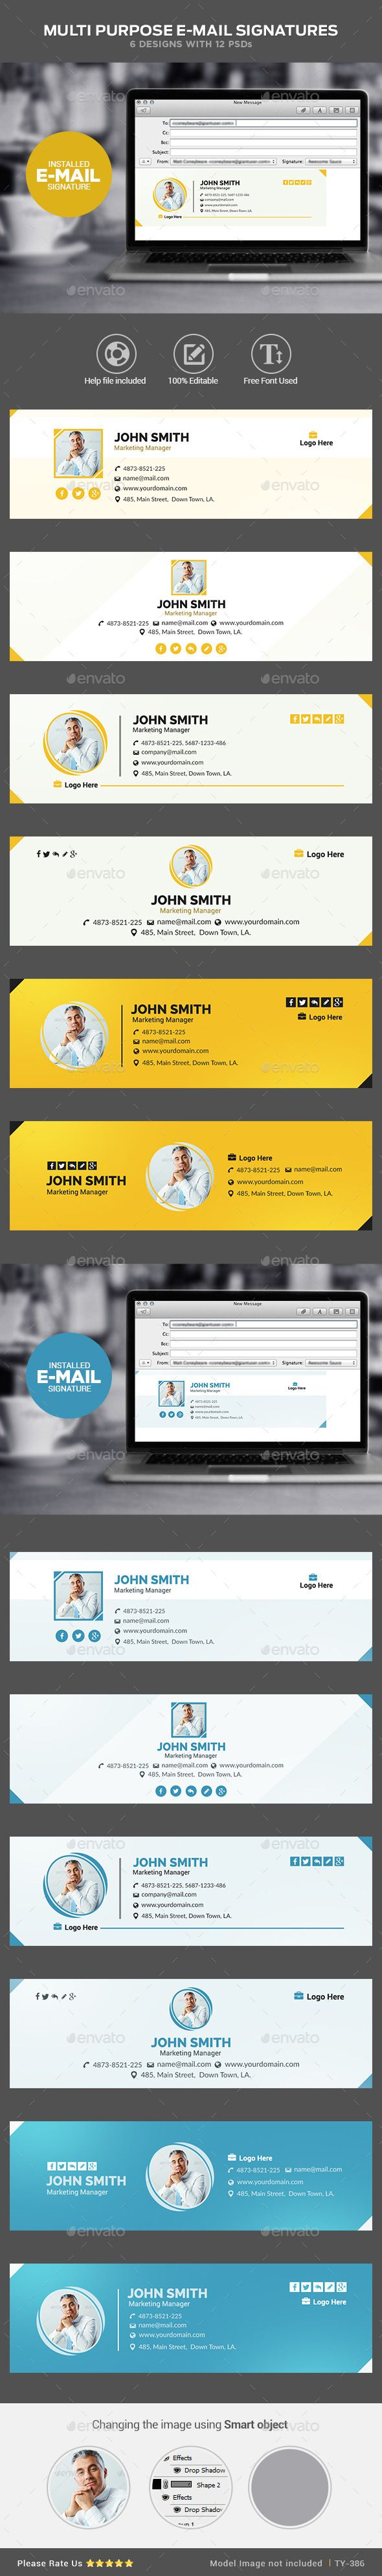 Multi Purpose Email Signature Templates by doto Email Signature Templates Clean & Professional Design Multipurpose Use Completely editable Easily customizable PSD Templates